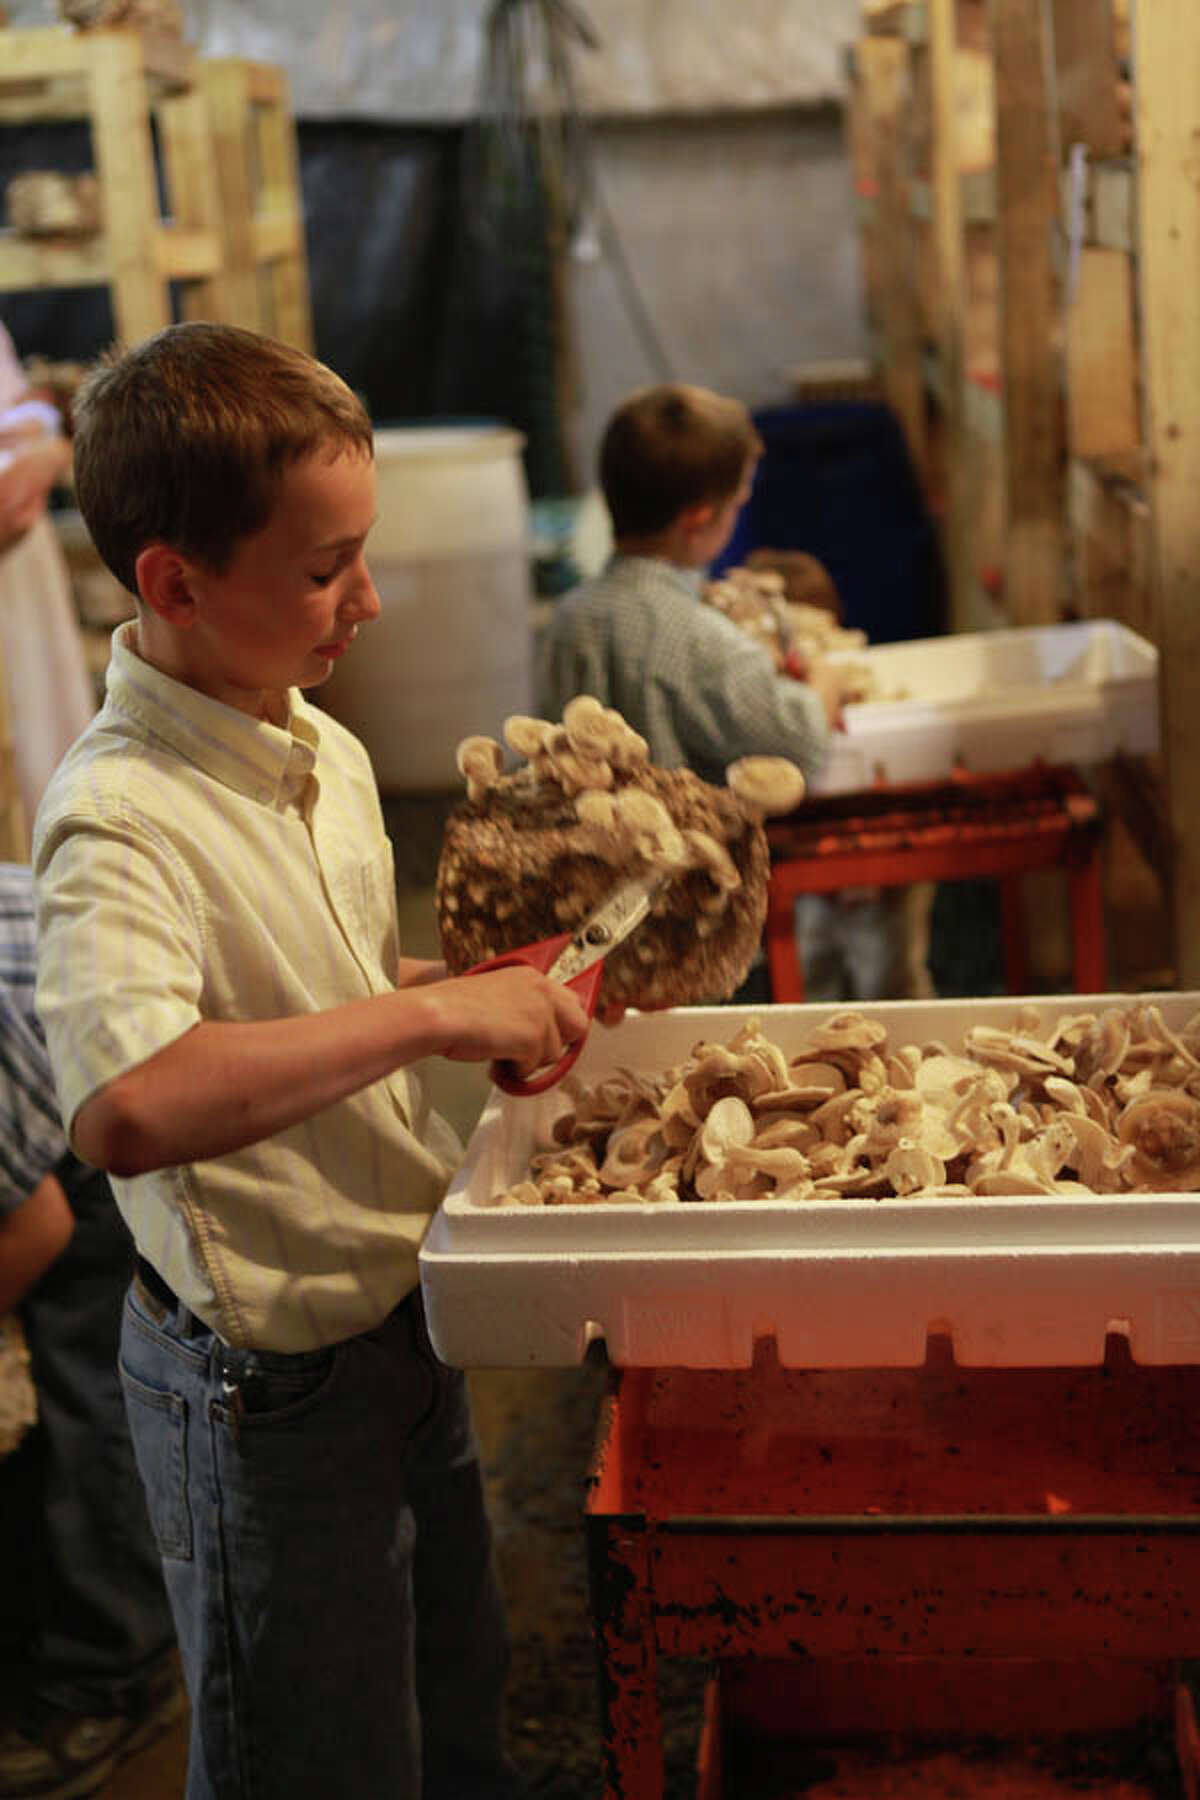 Zehr and Sons' Mushroom Farm in Columbia County is a family business that has flourished through involvement in farmers markets throughout the region. Read the full story here.